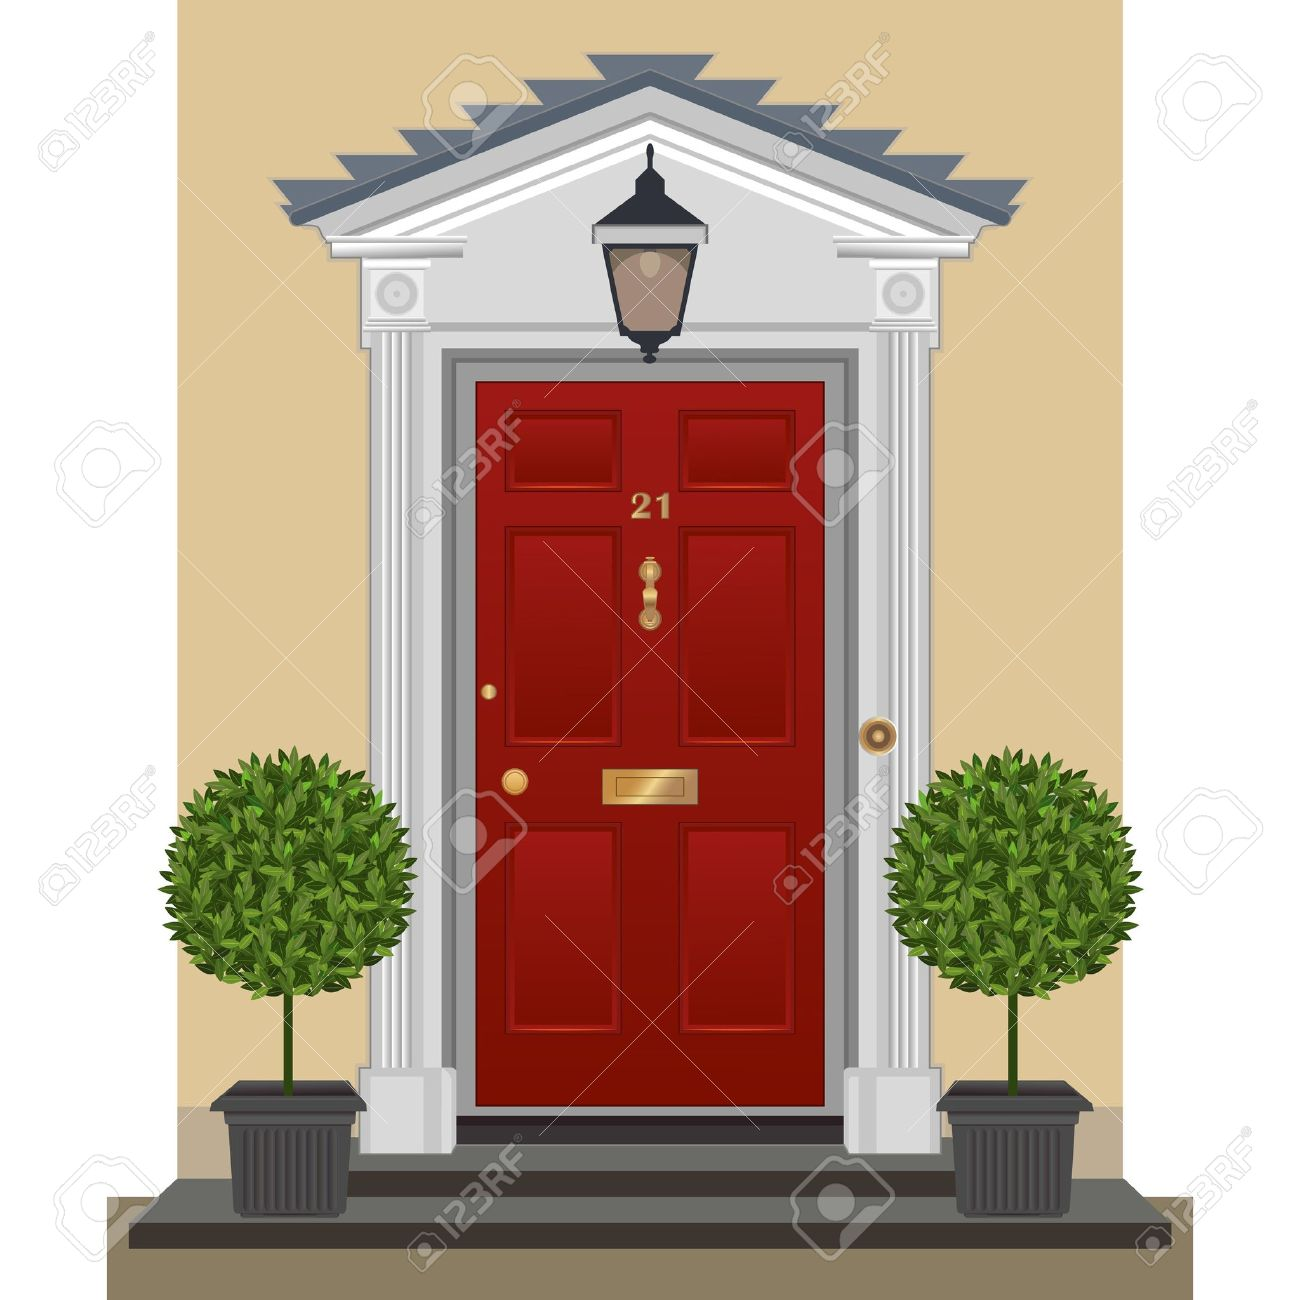 Red Painted Front Door With Brass Fittings Royalty Free Cliparts